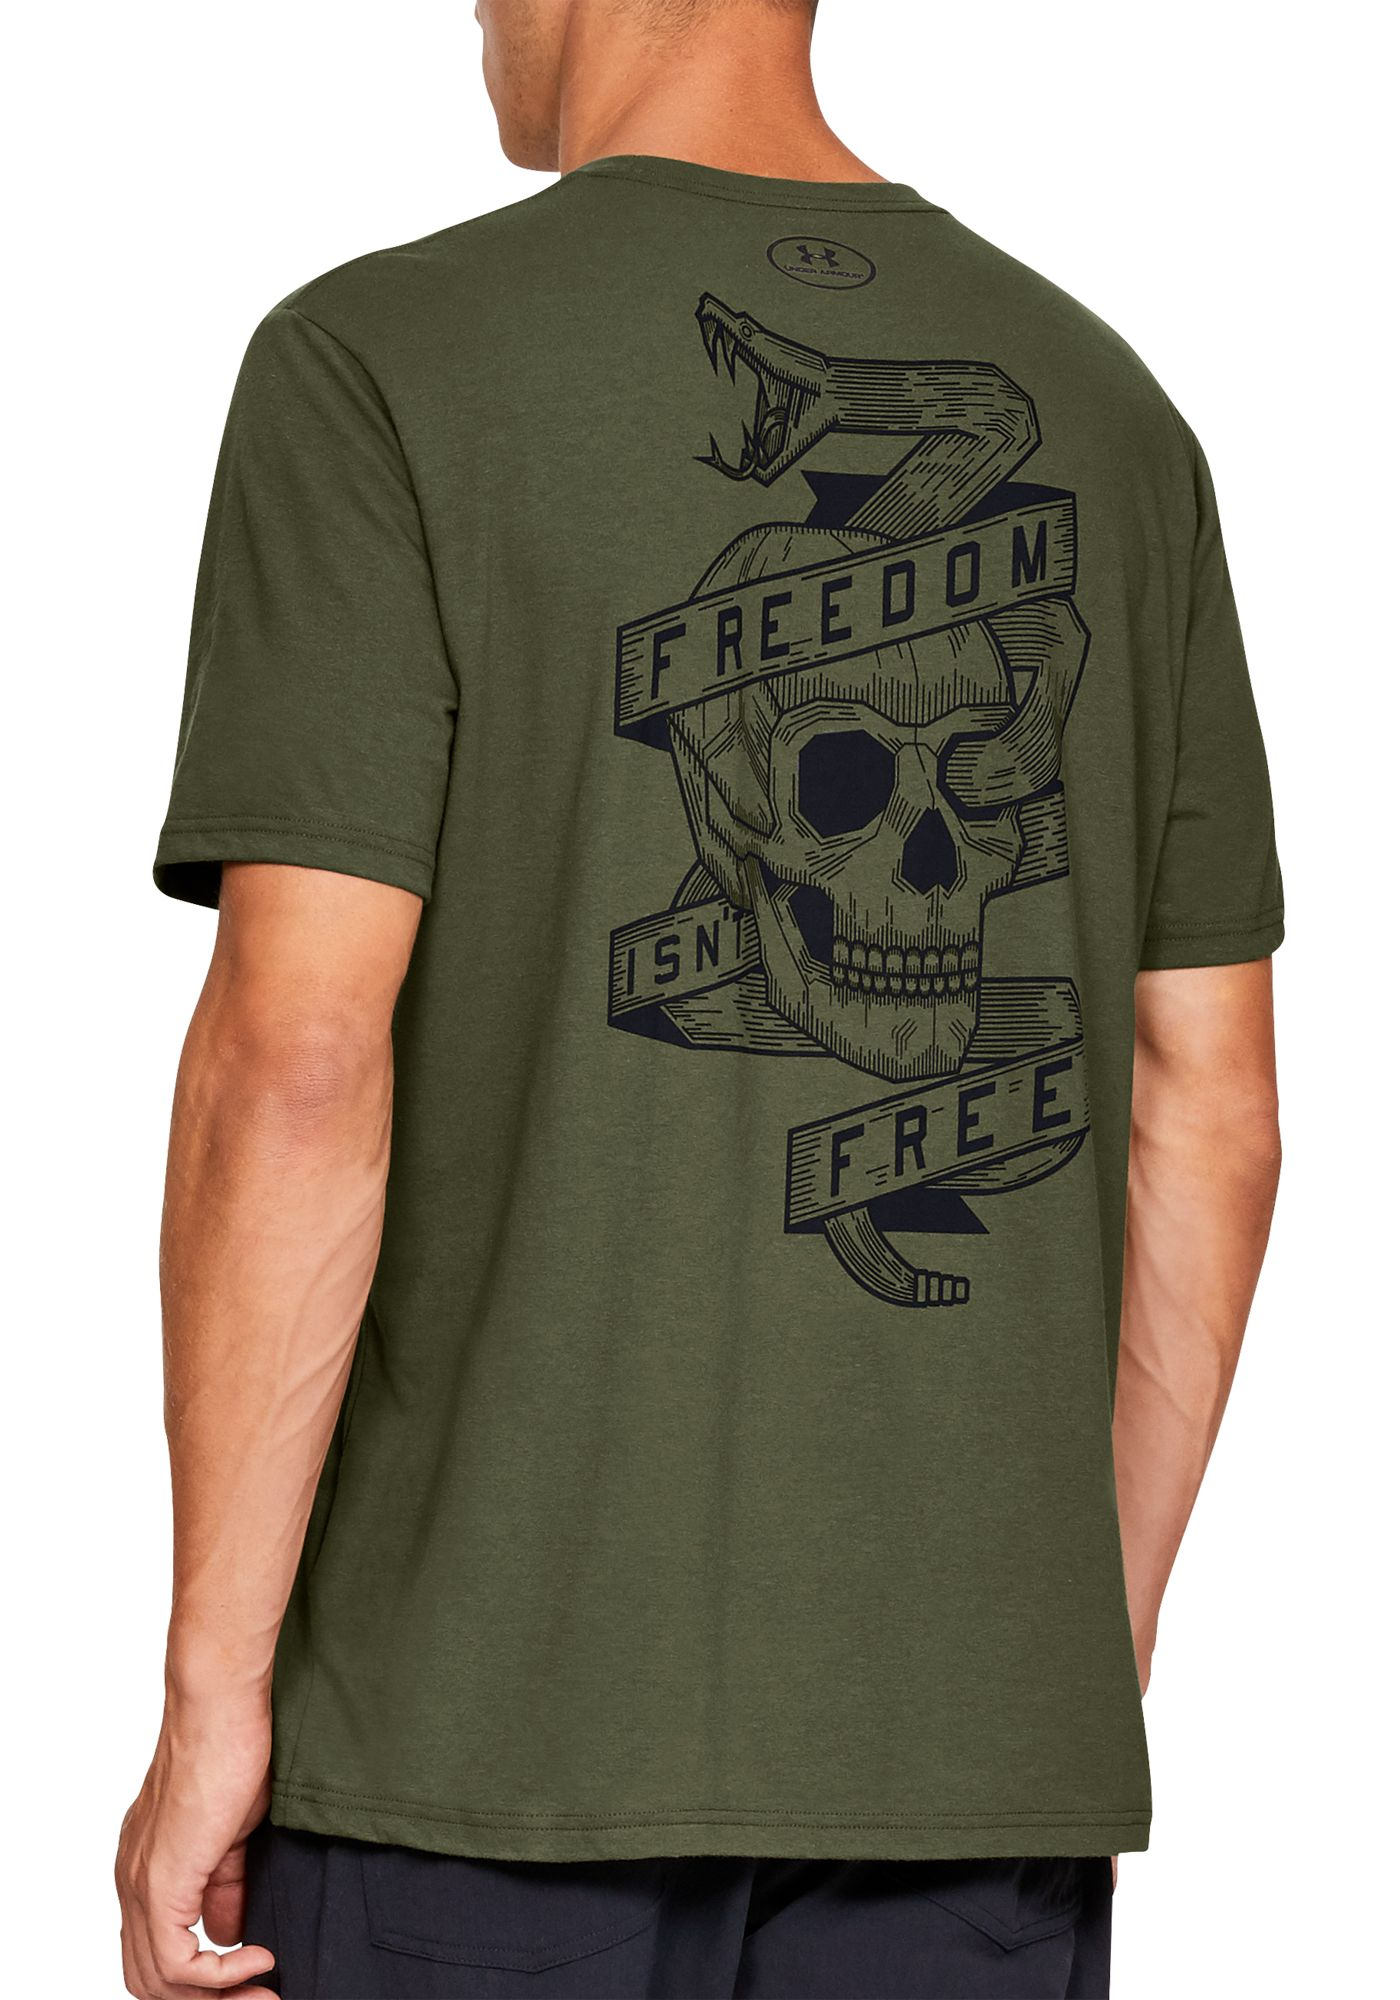 Under Armour Men's Freedom Isn't Free  Graphic  T-Shirt